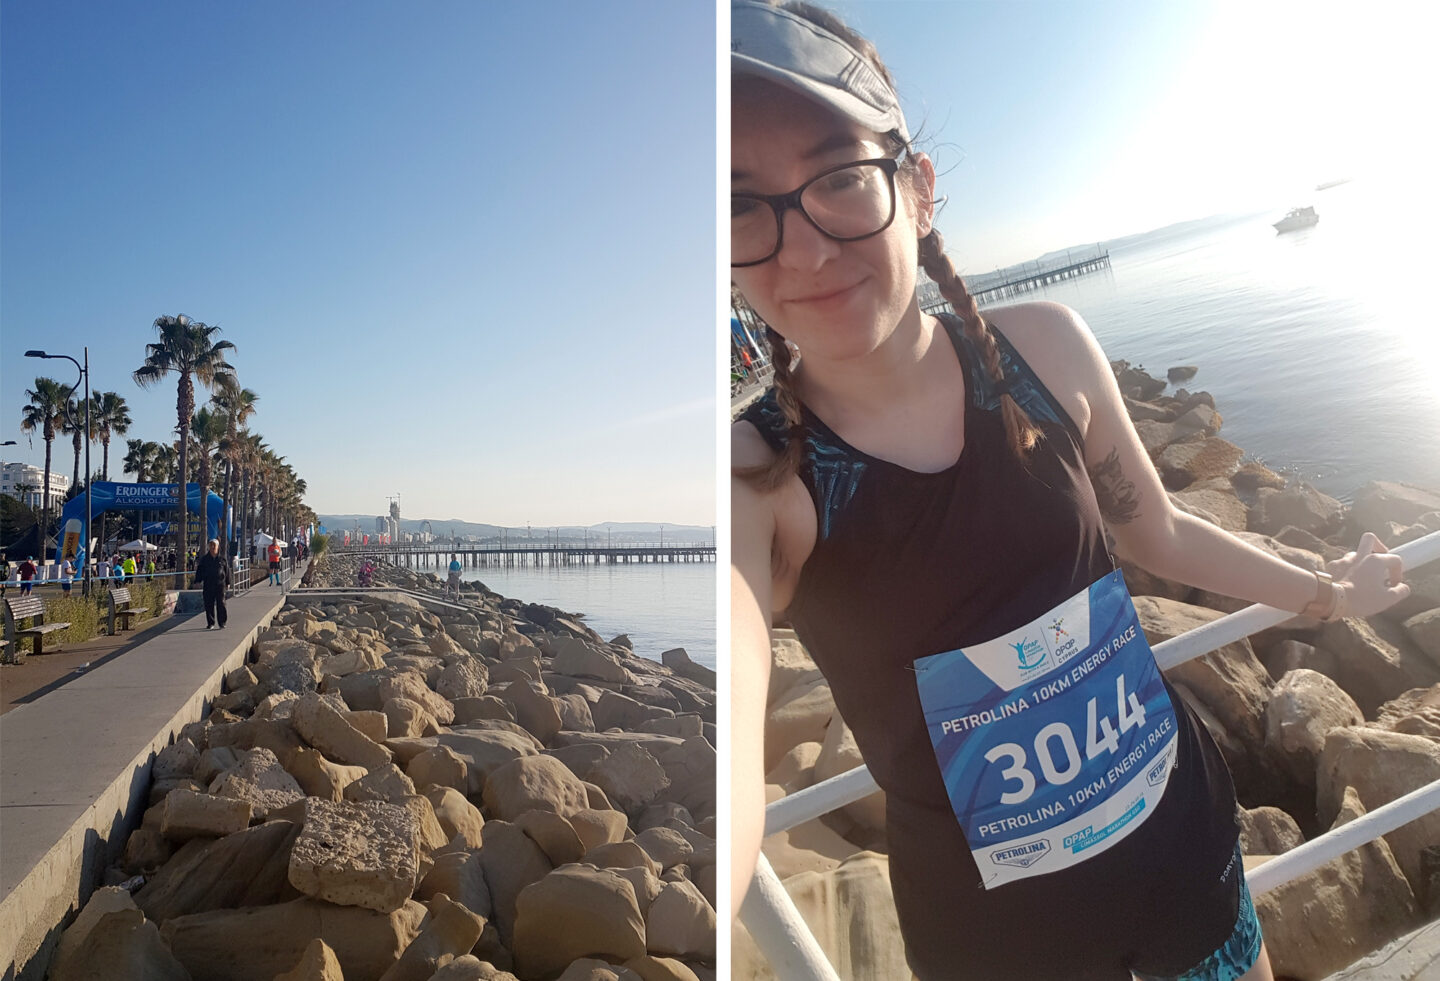 Coastal front of OPAP Limassol Marathon GSO with girl in front of water wearing Petrolina 10km Energy Race bib